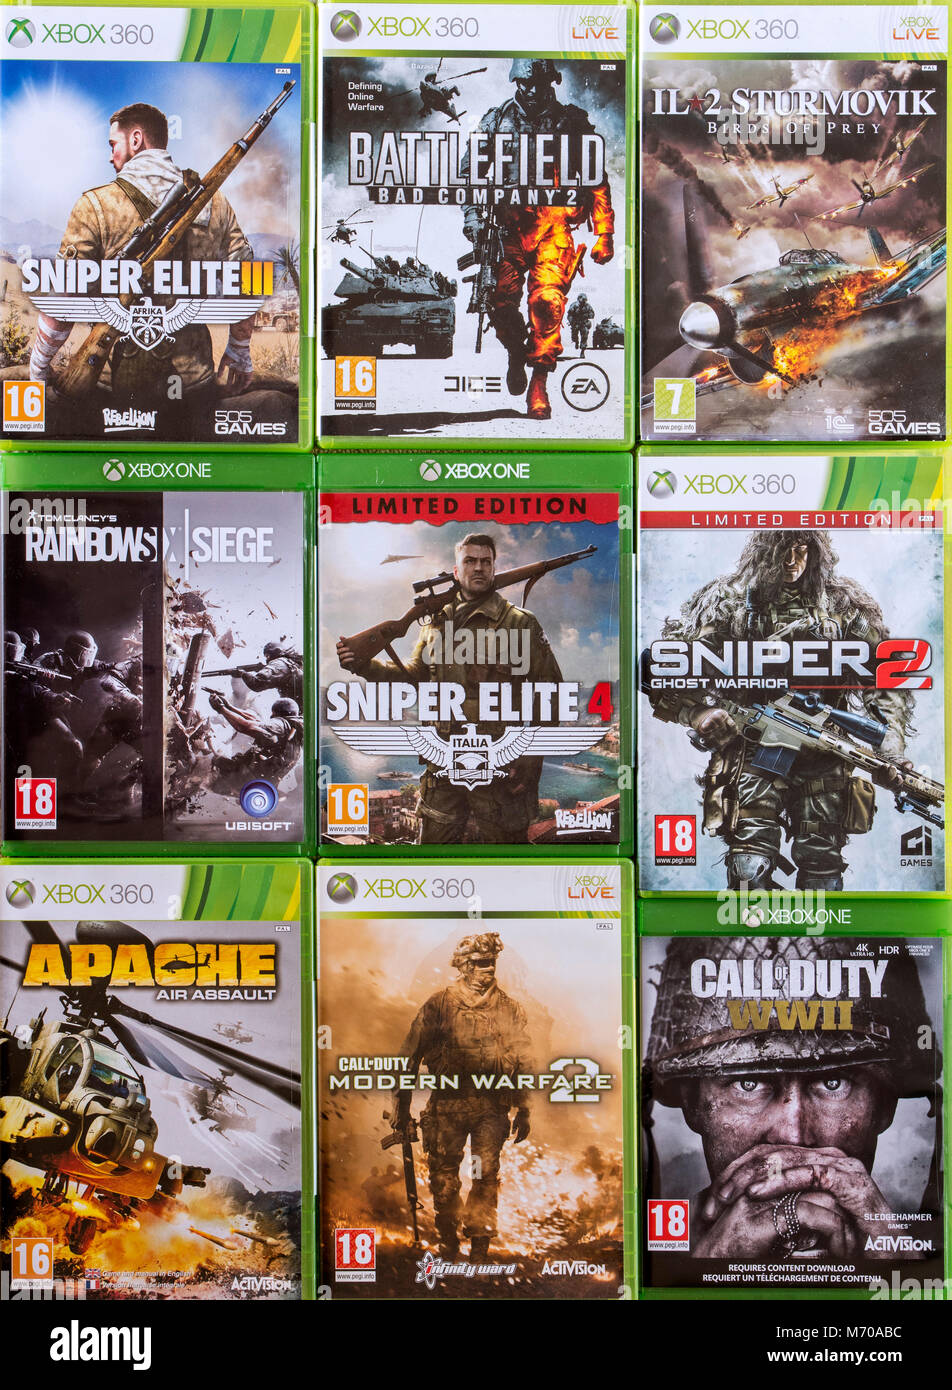 Collection of violent first-person shooter video games for Xbox 360 and Xbox One - Stock Image